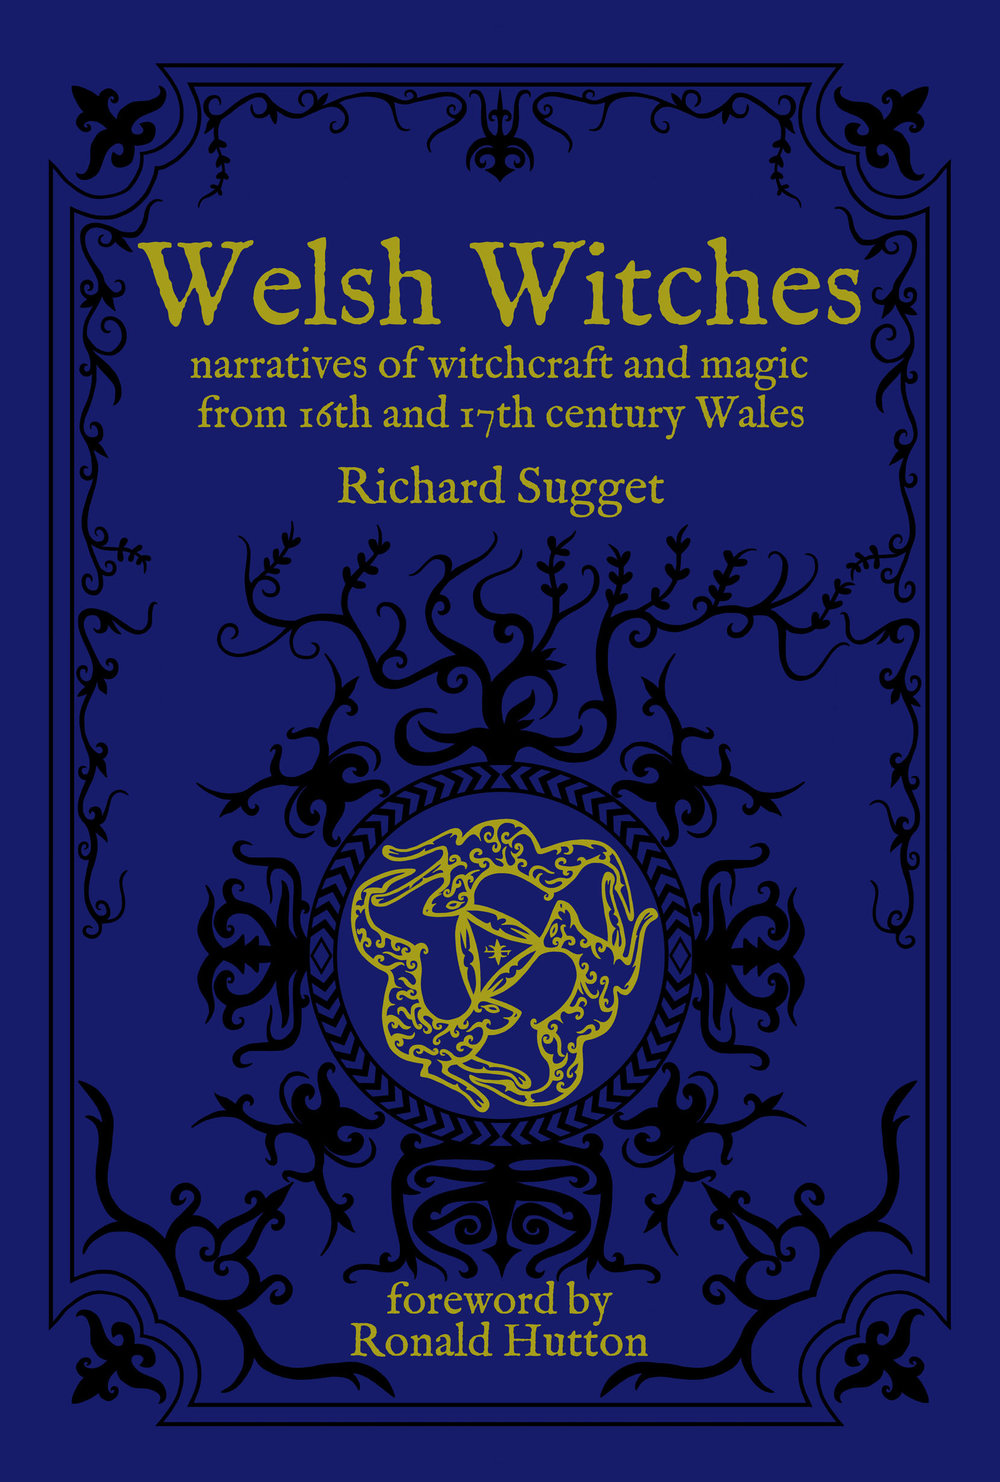 welsh witches colour demo.jpg